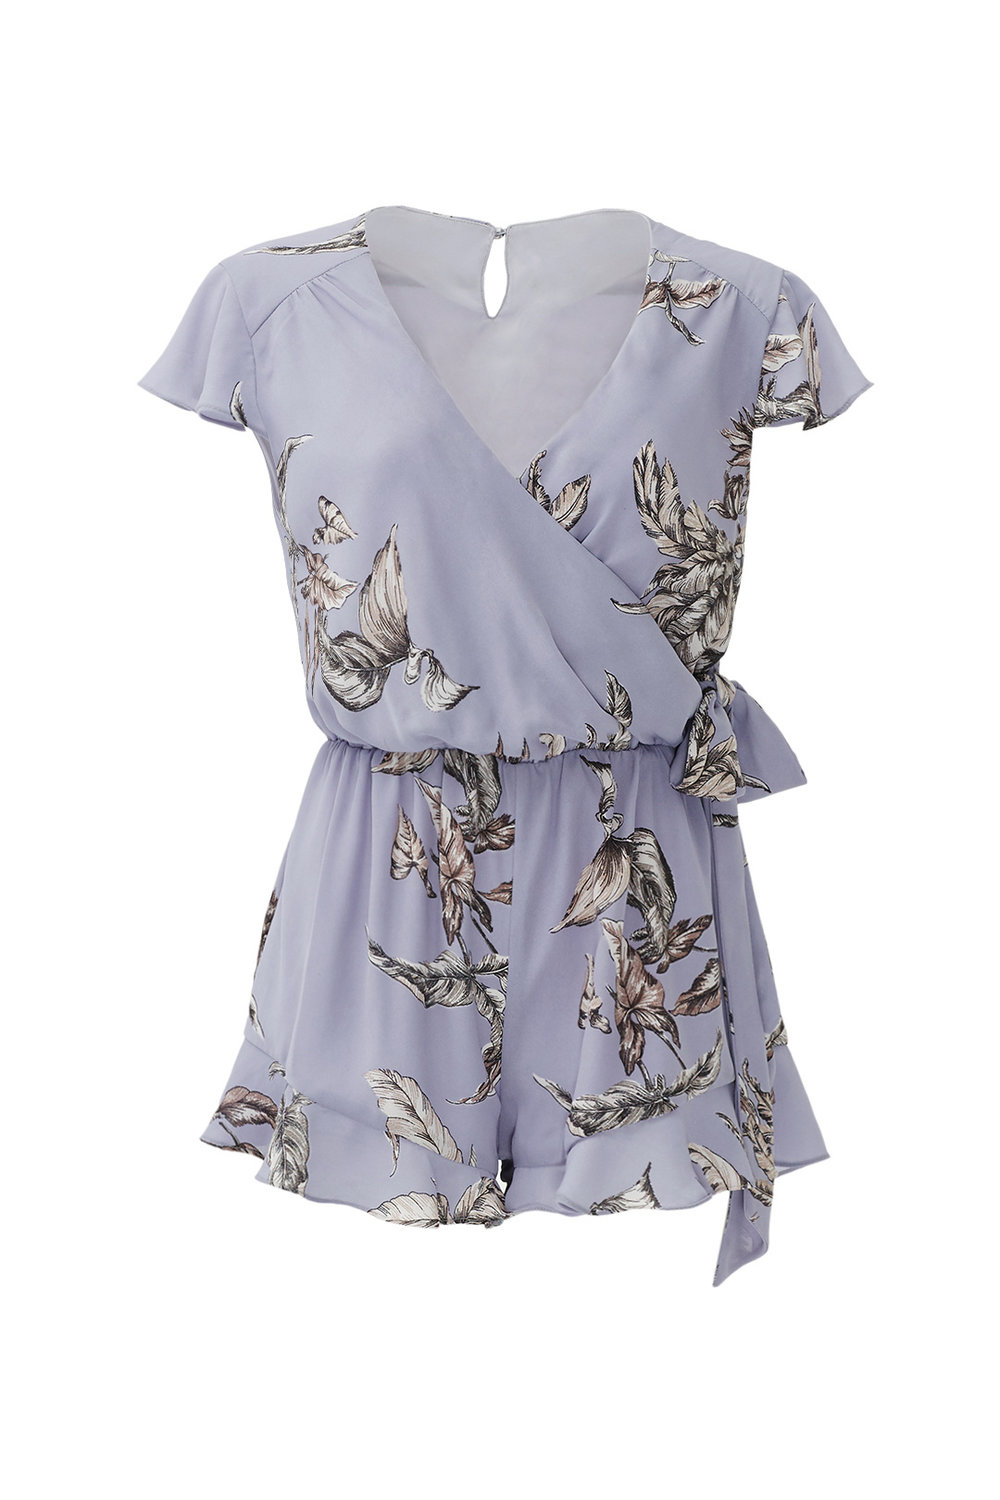 Ashby Romper by TULAROSA - Why It Works:  The larger floral print is a great option for clients who prefer a little pattern.  The lavender color is soft and romantic and the wrap top will flatter the natural waist.